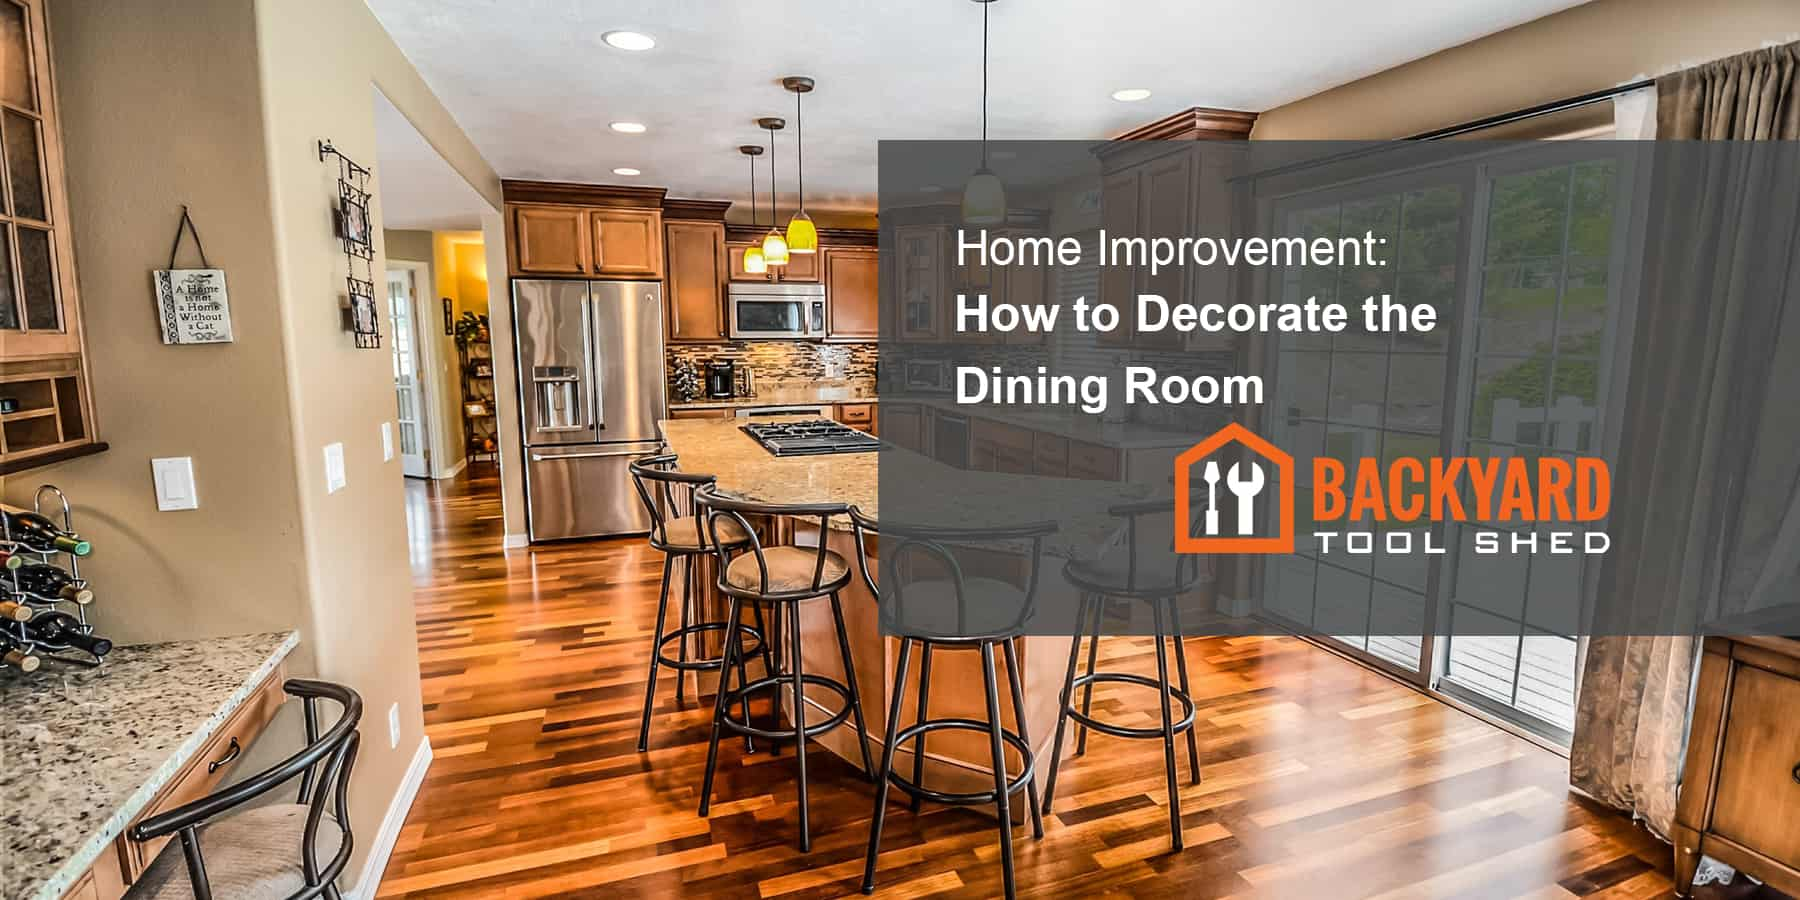 Home Improvement: How to Decorate your Dining Room